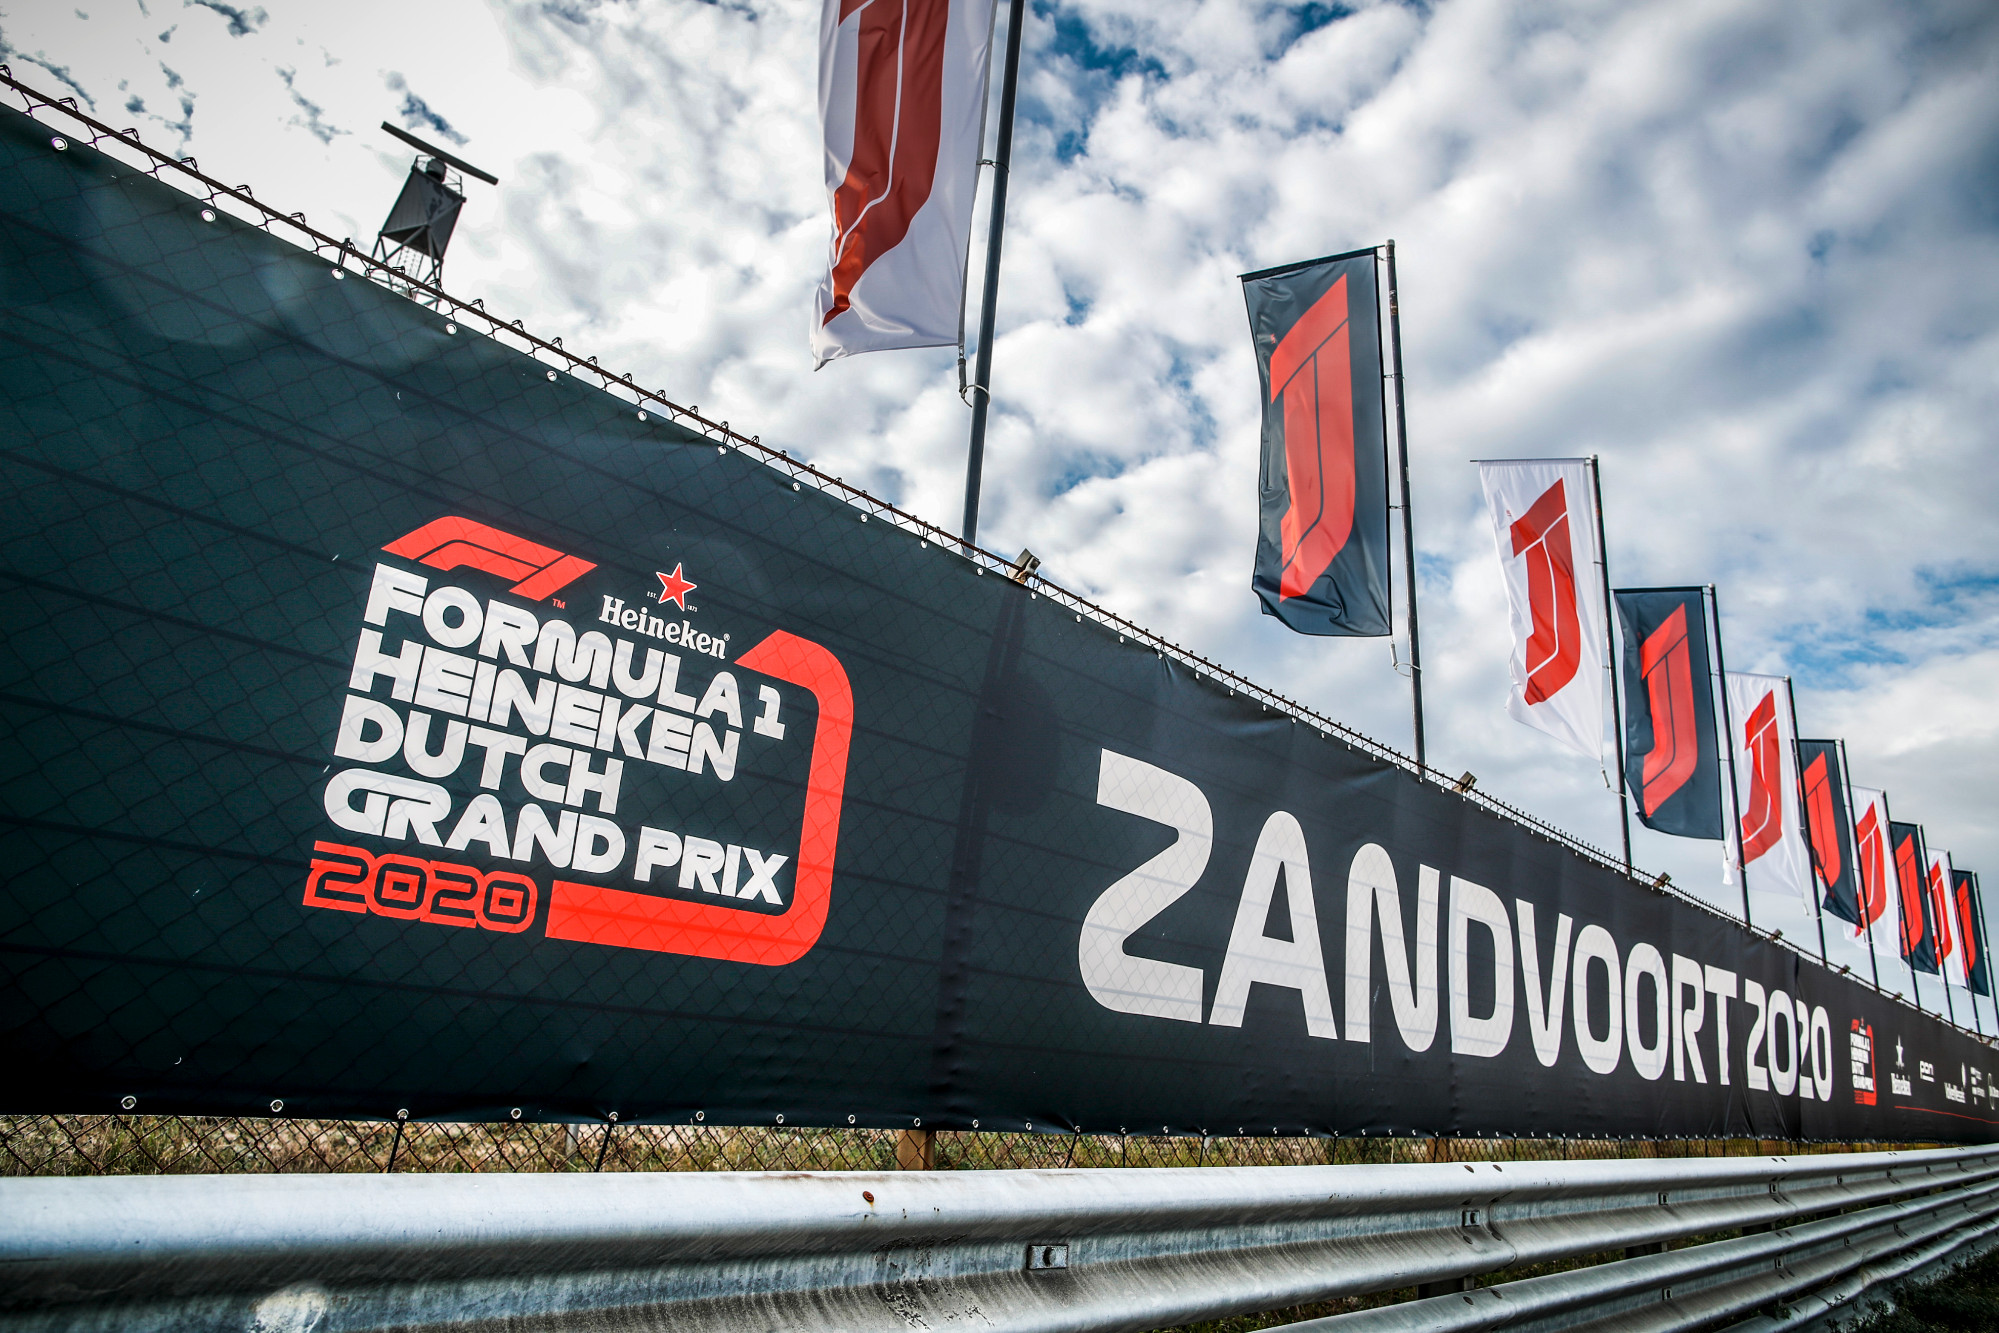 Dutch Grand Prix organisers confirm 2020 Zandvoort F1 race is cancelled